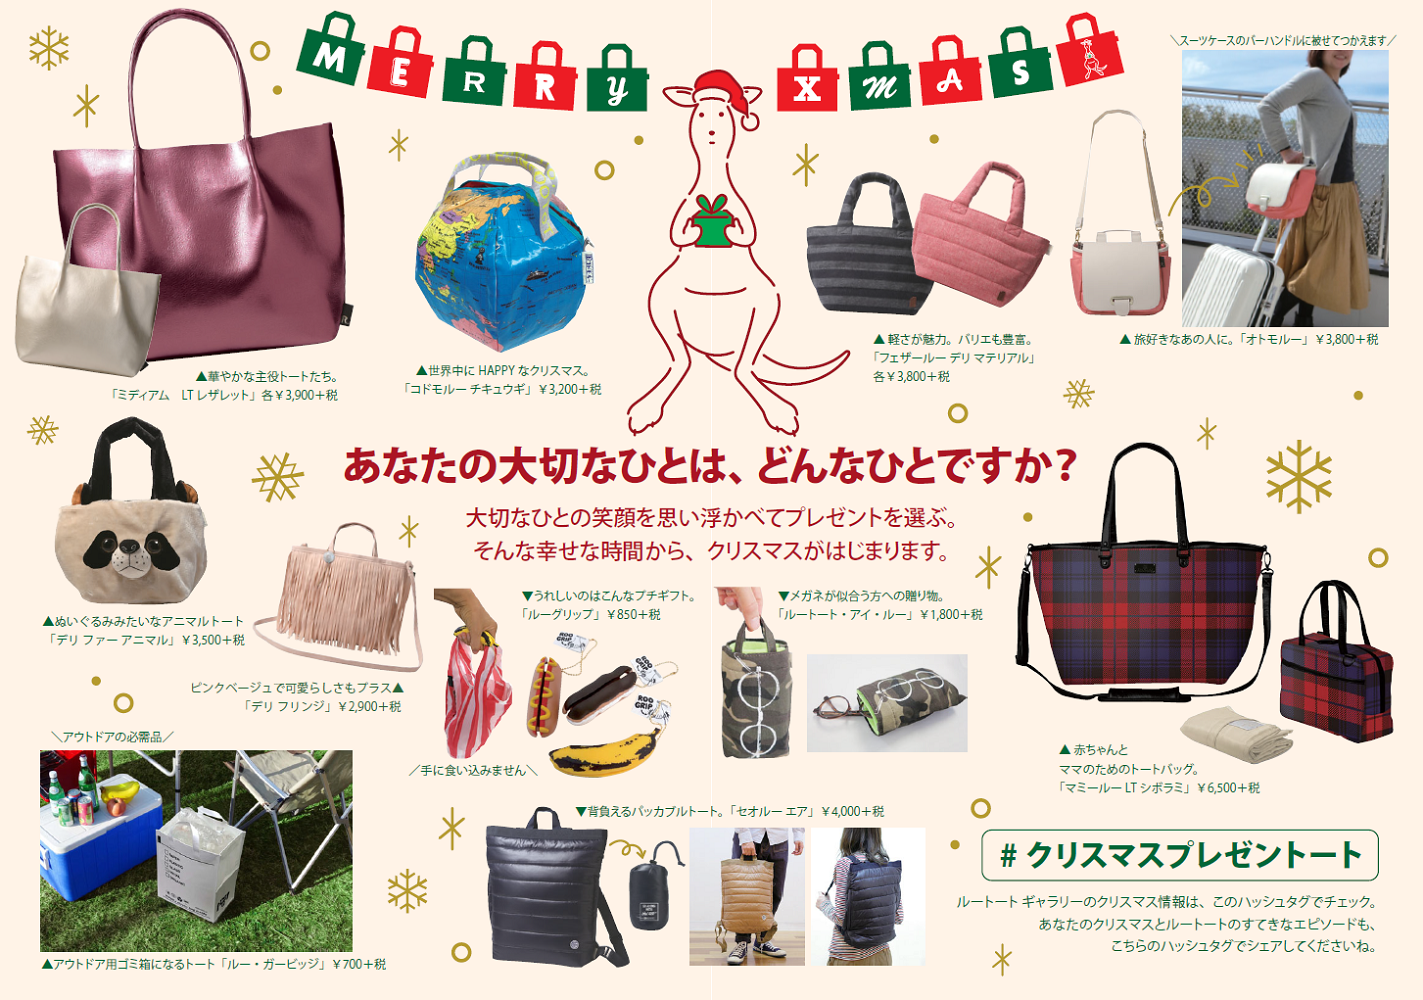 http://rootote.jp/news/assets/xmasgiftflyer_2017.png